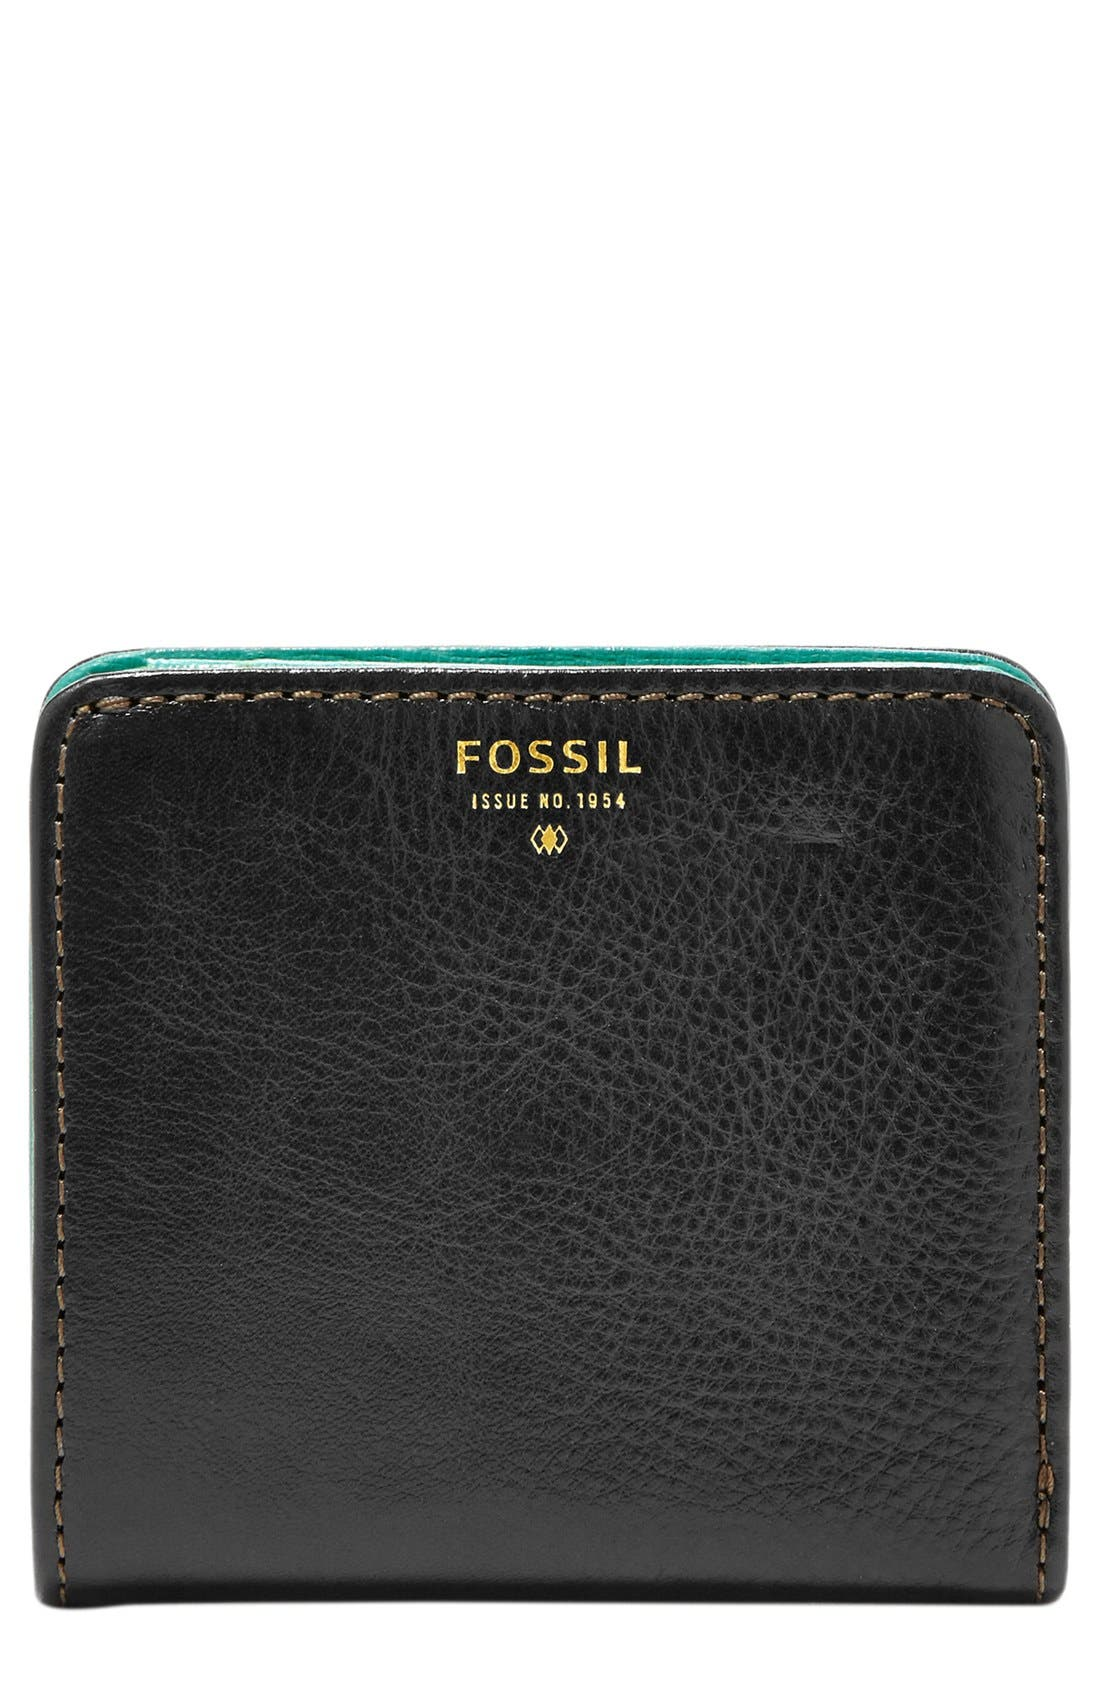 Main Image - Fossil 'Sydney' Bifold Leather Wallet